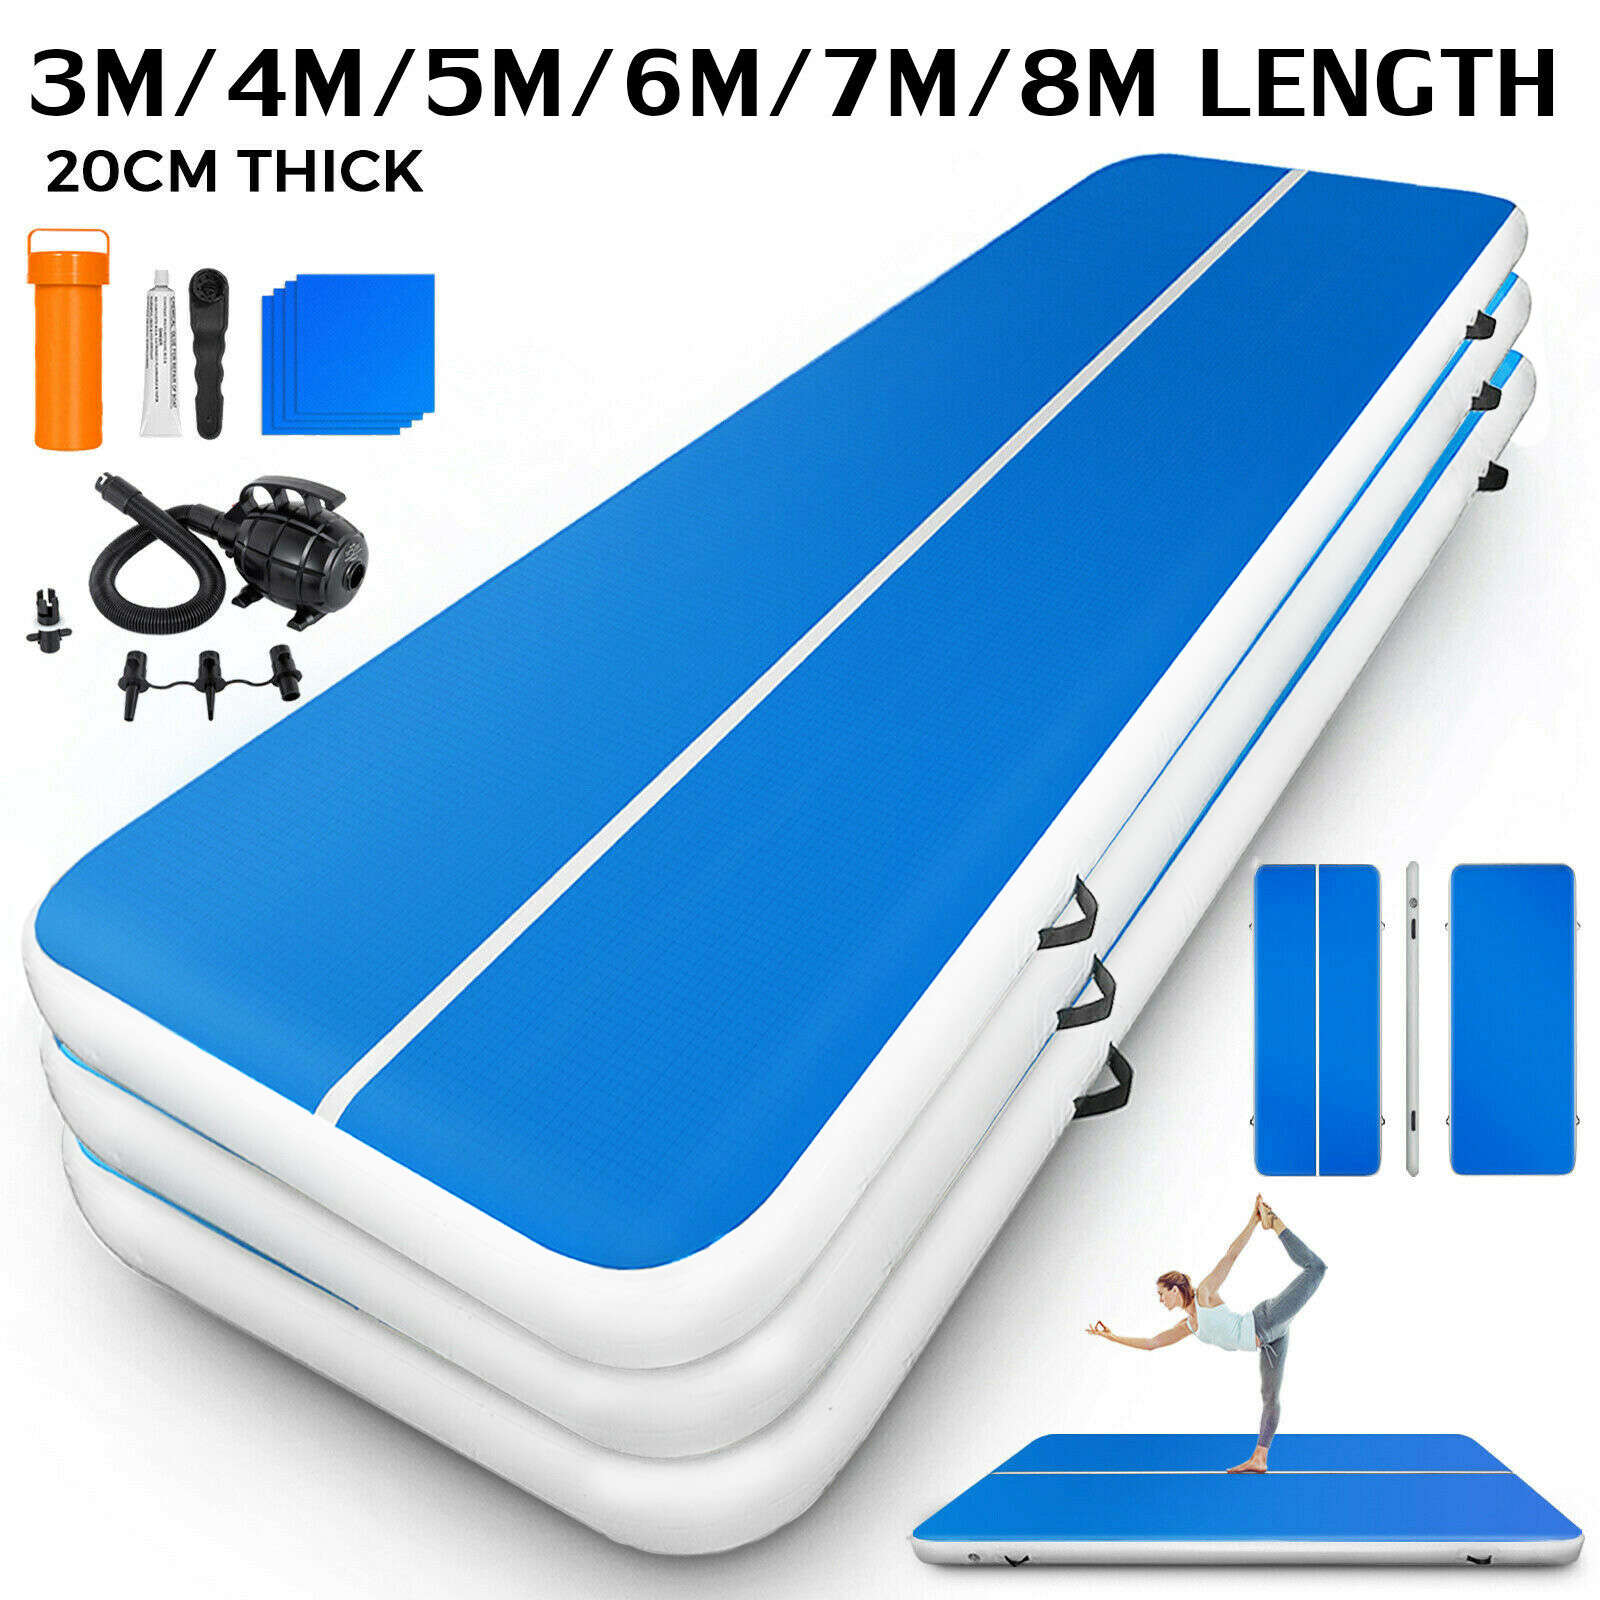 6x20FT Airtrack Air Track Floor Home Inflatable Gymnastic